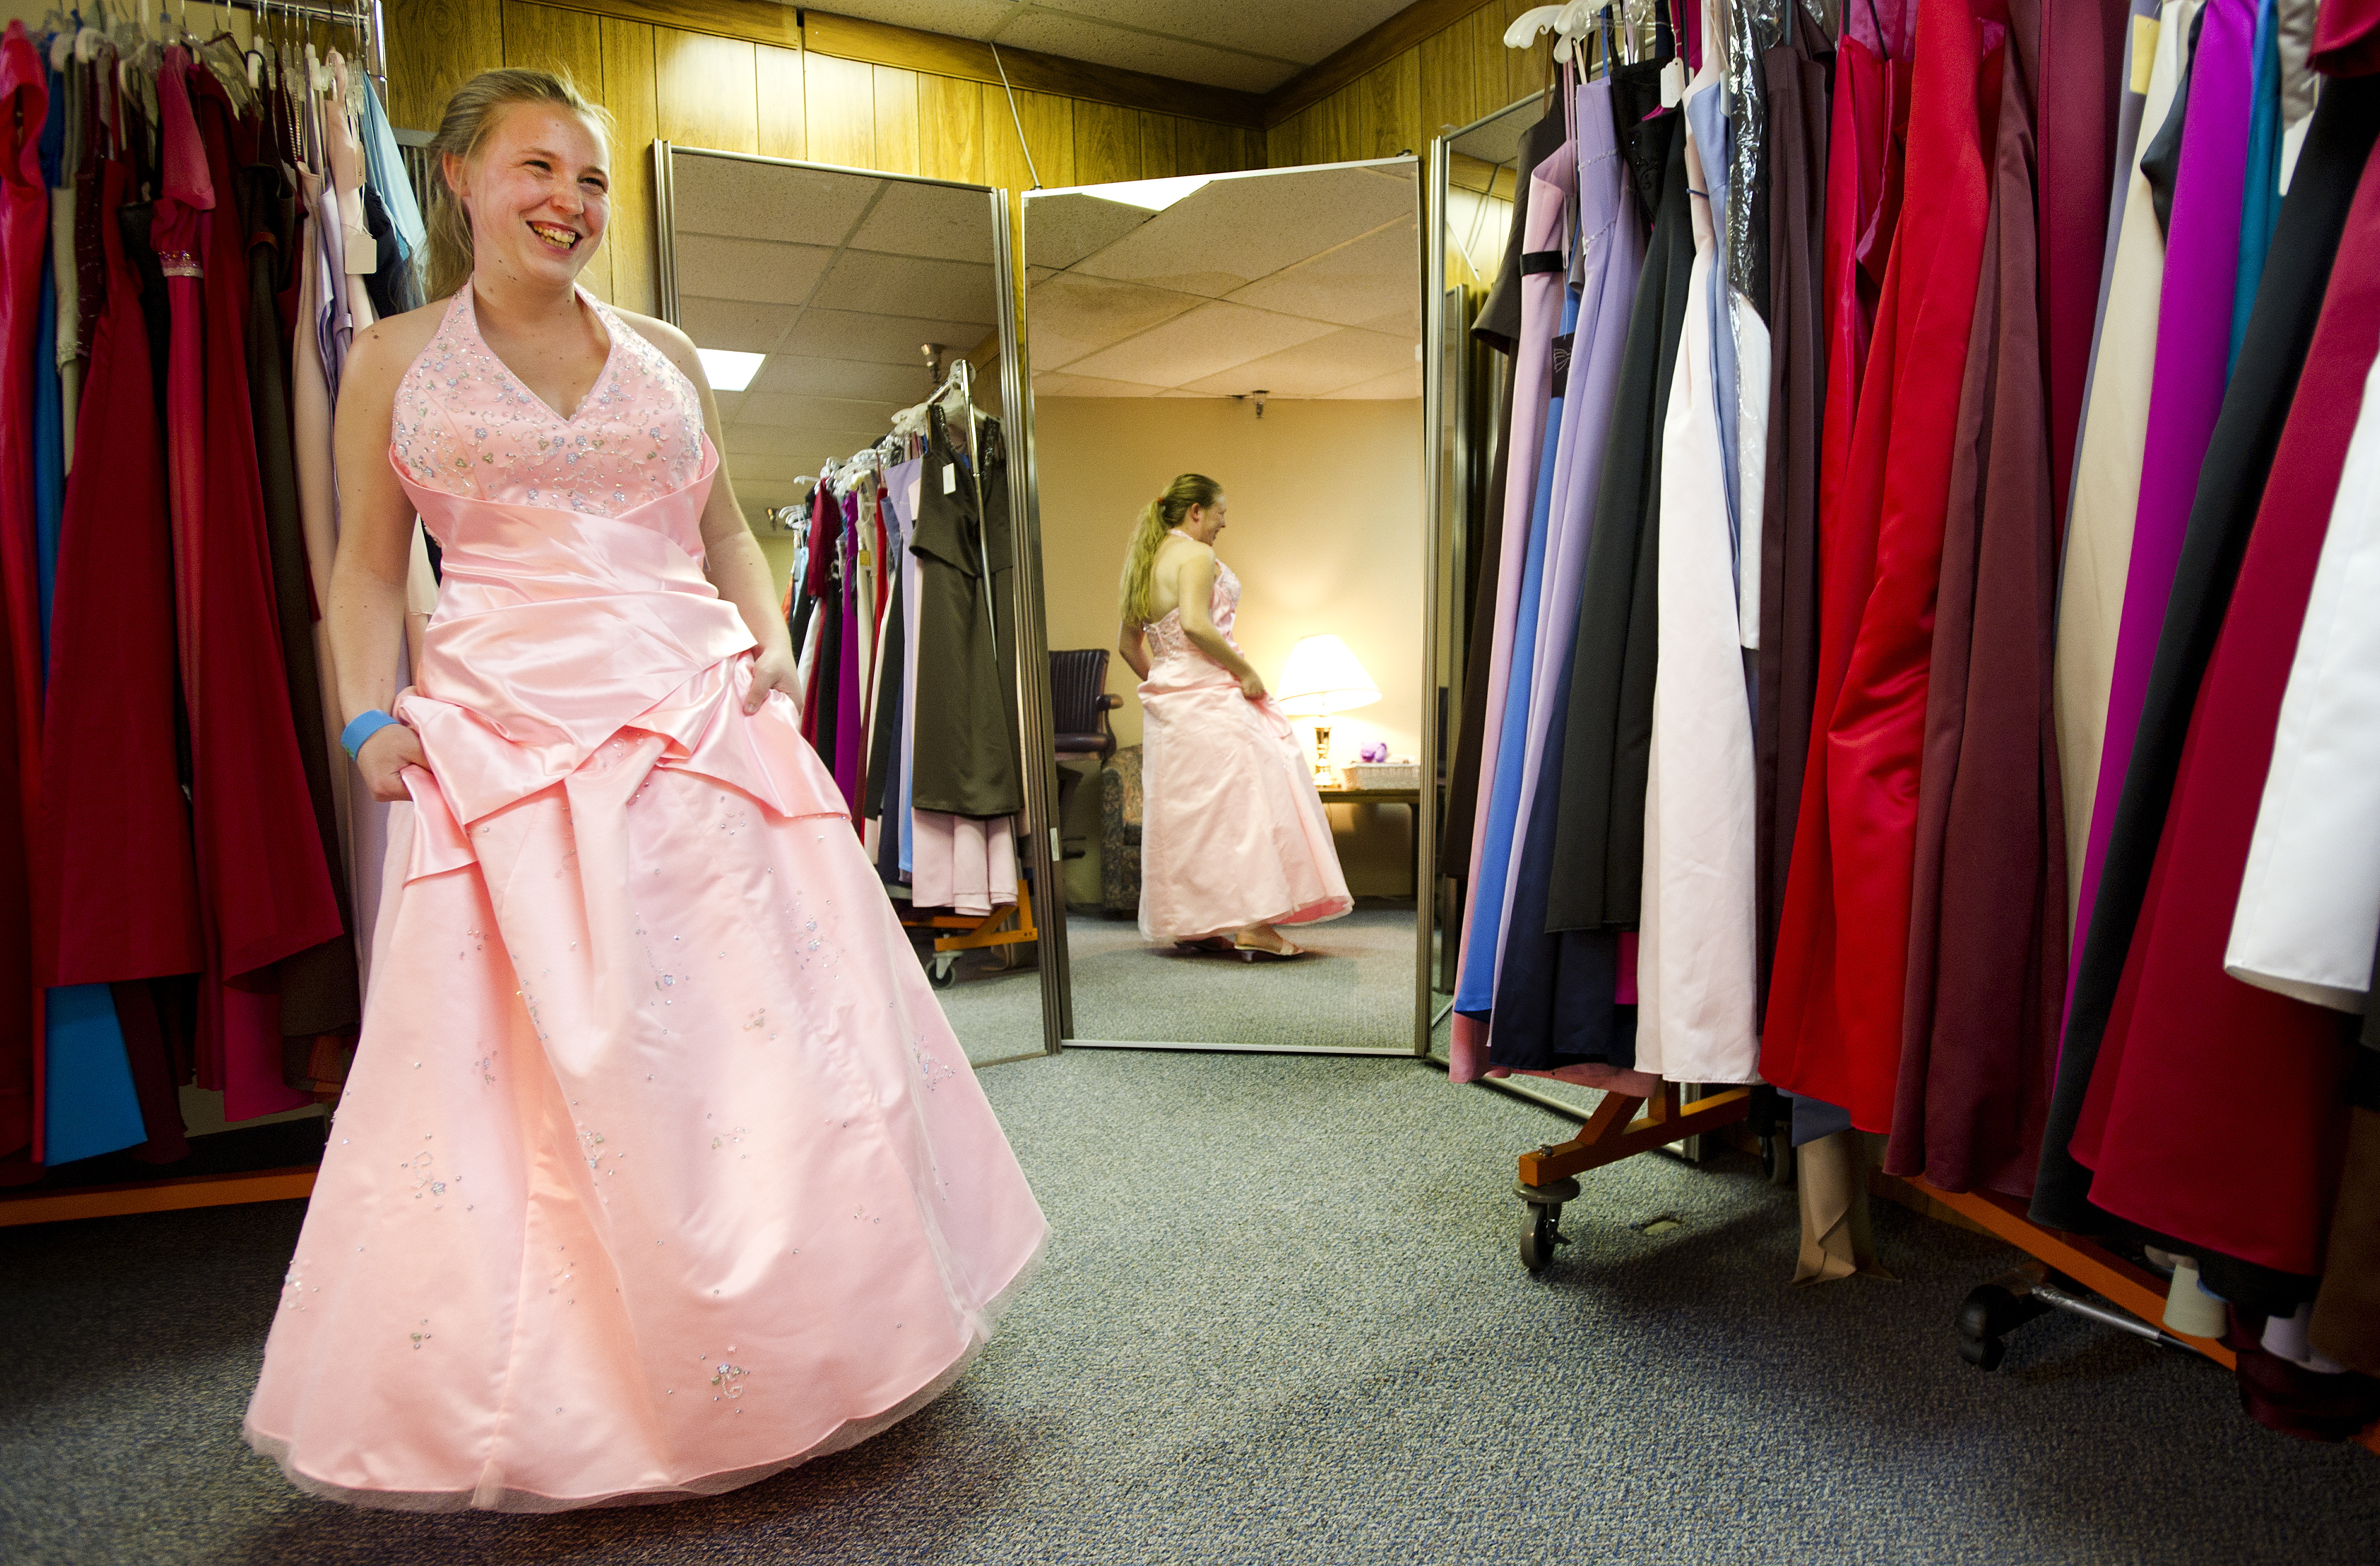 Nonprofit offers free prom gown of choice for special night ...